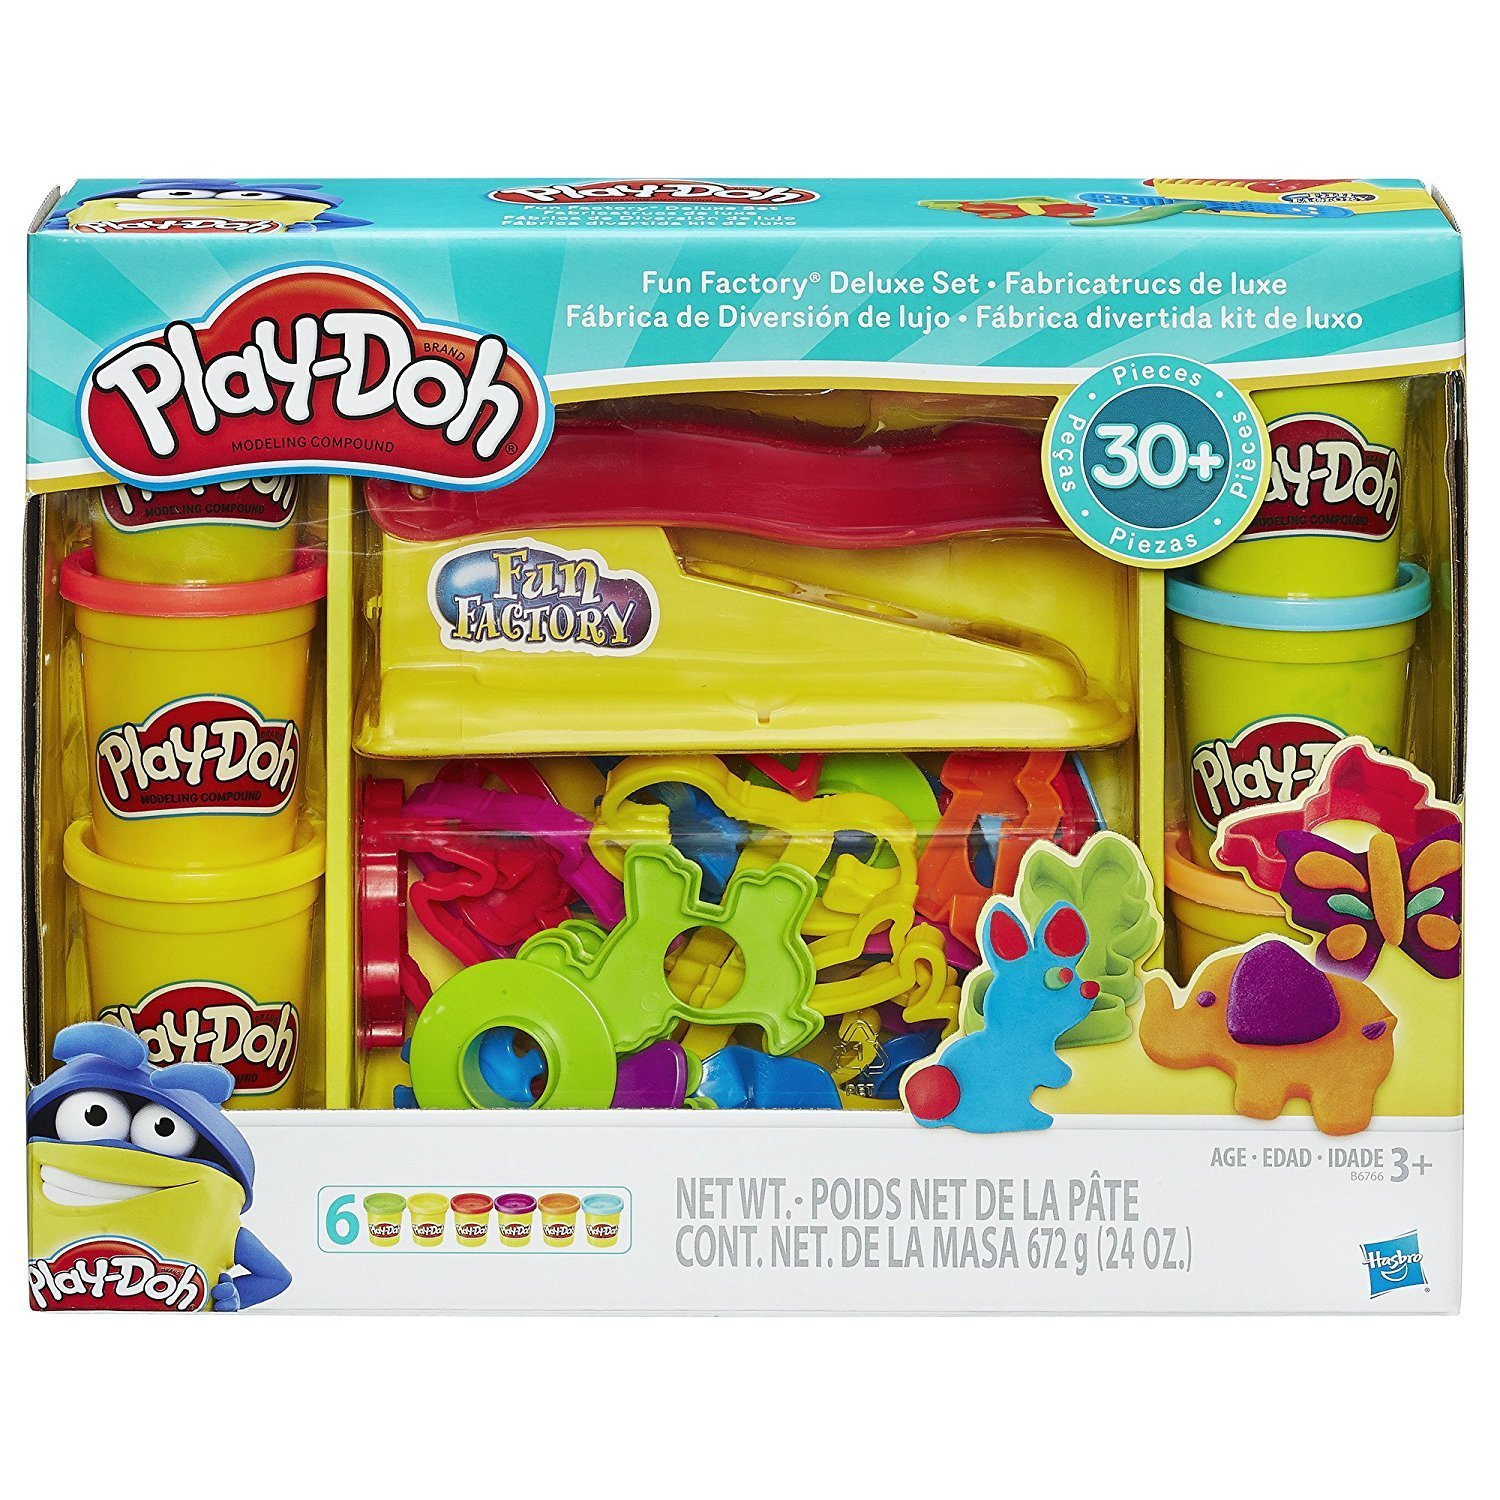 Play Doh Fun Factory Deluxe Set B6766 $9.75